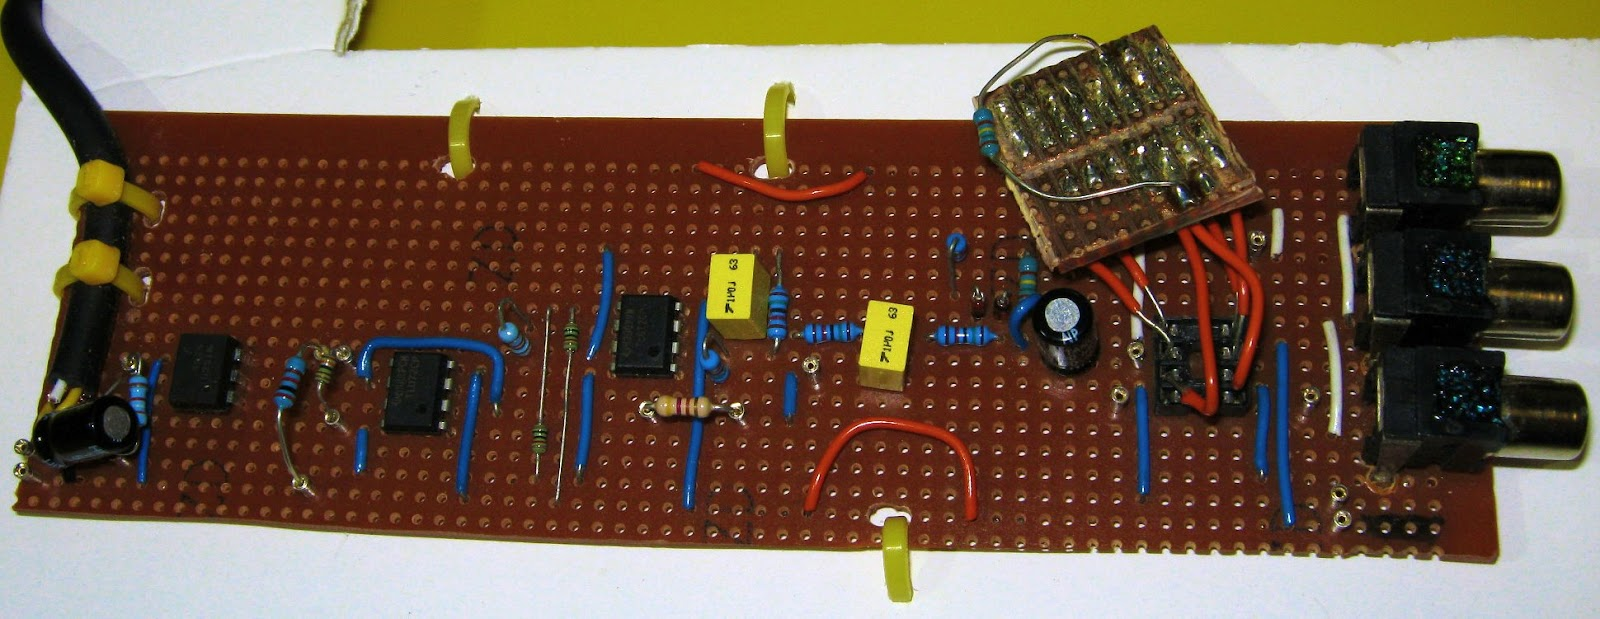 Image Result For Diy Optical Amplifiera